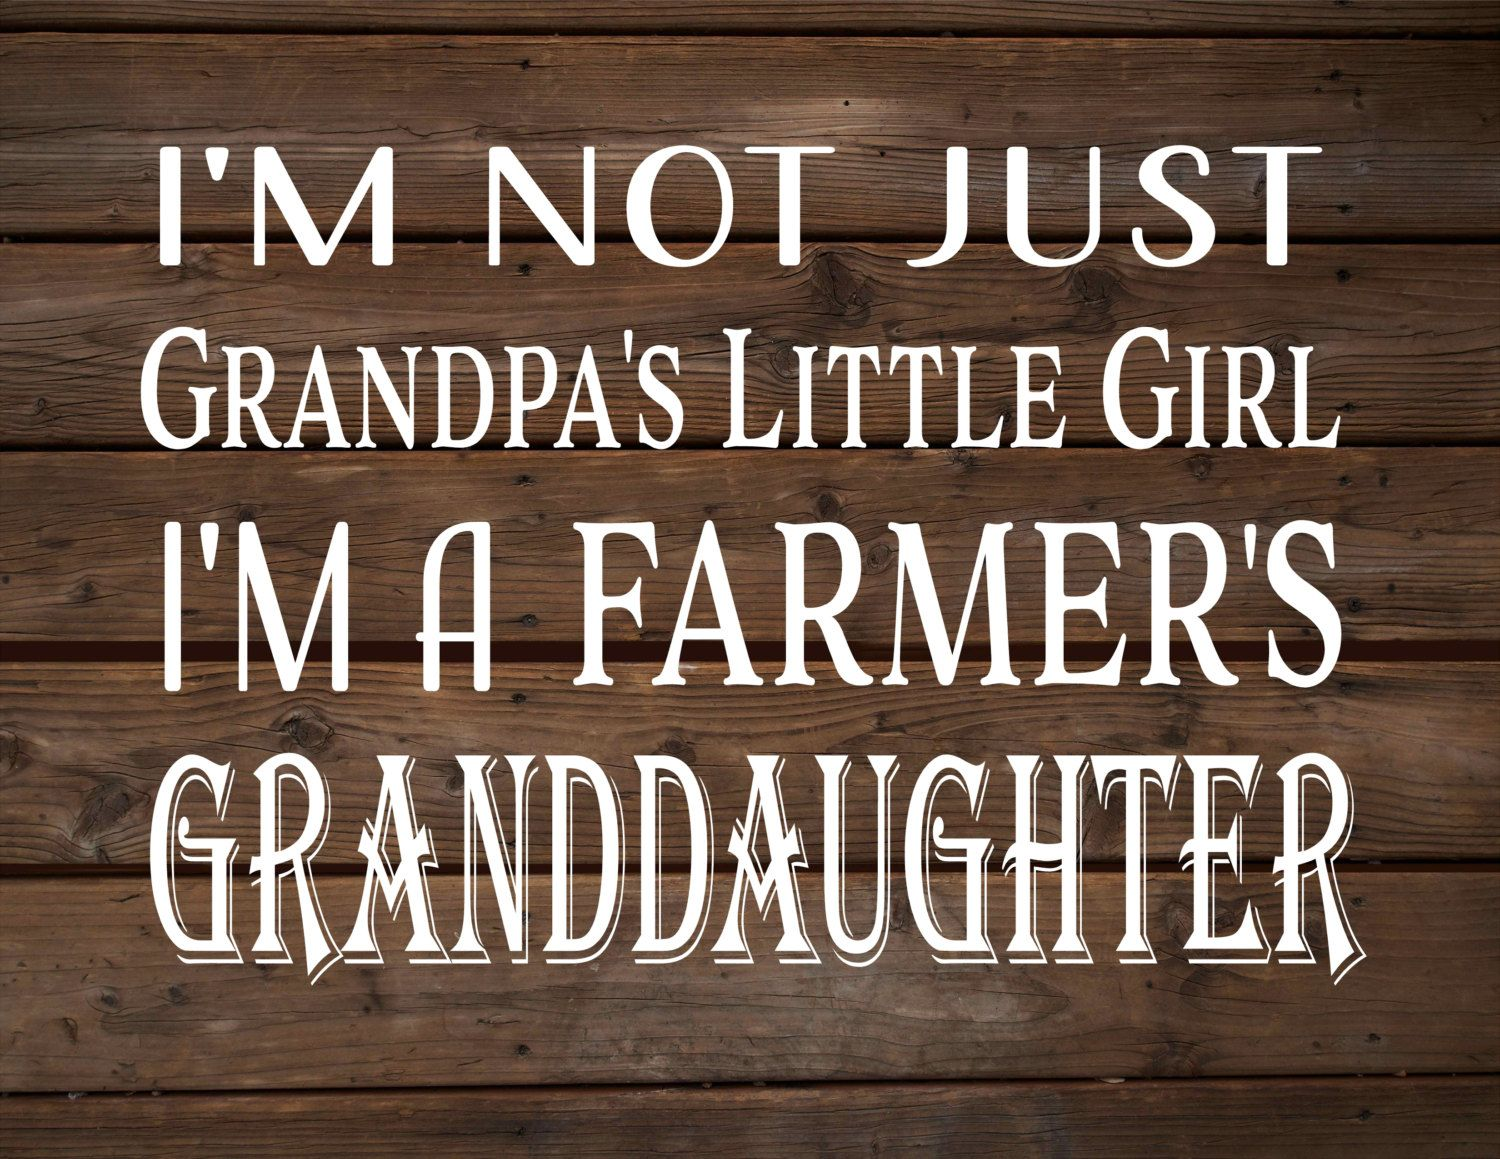 This is so true !!!!!!Yeppers!!!!I'm Not Grandpa's Little Girl   I